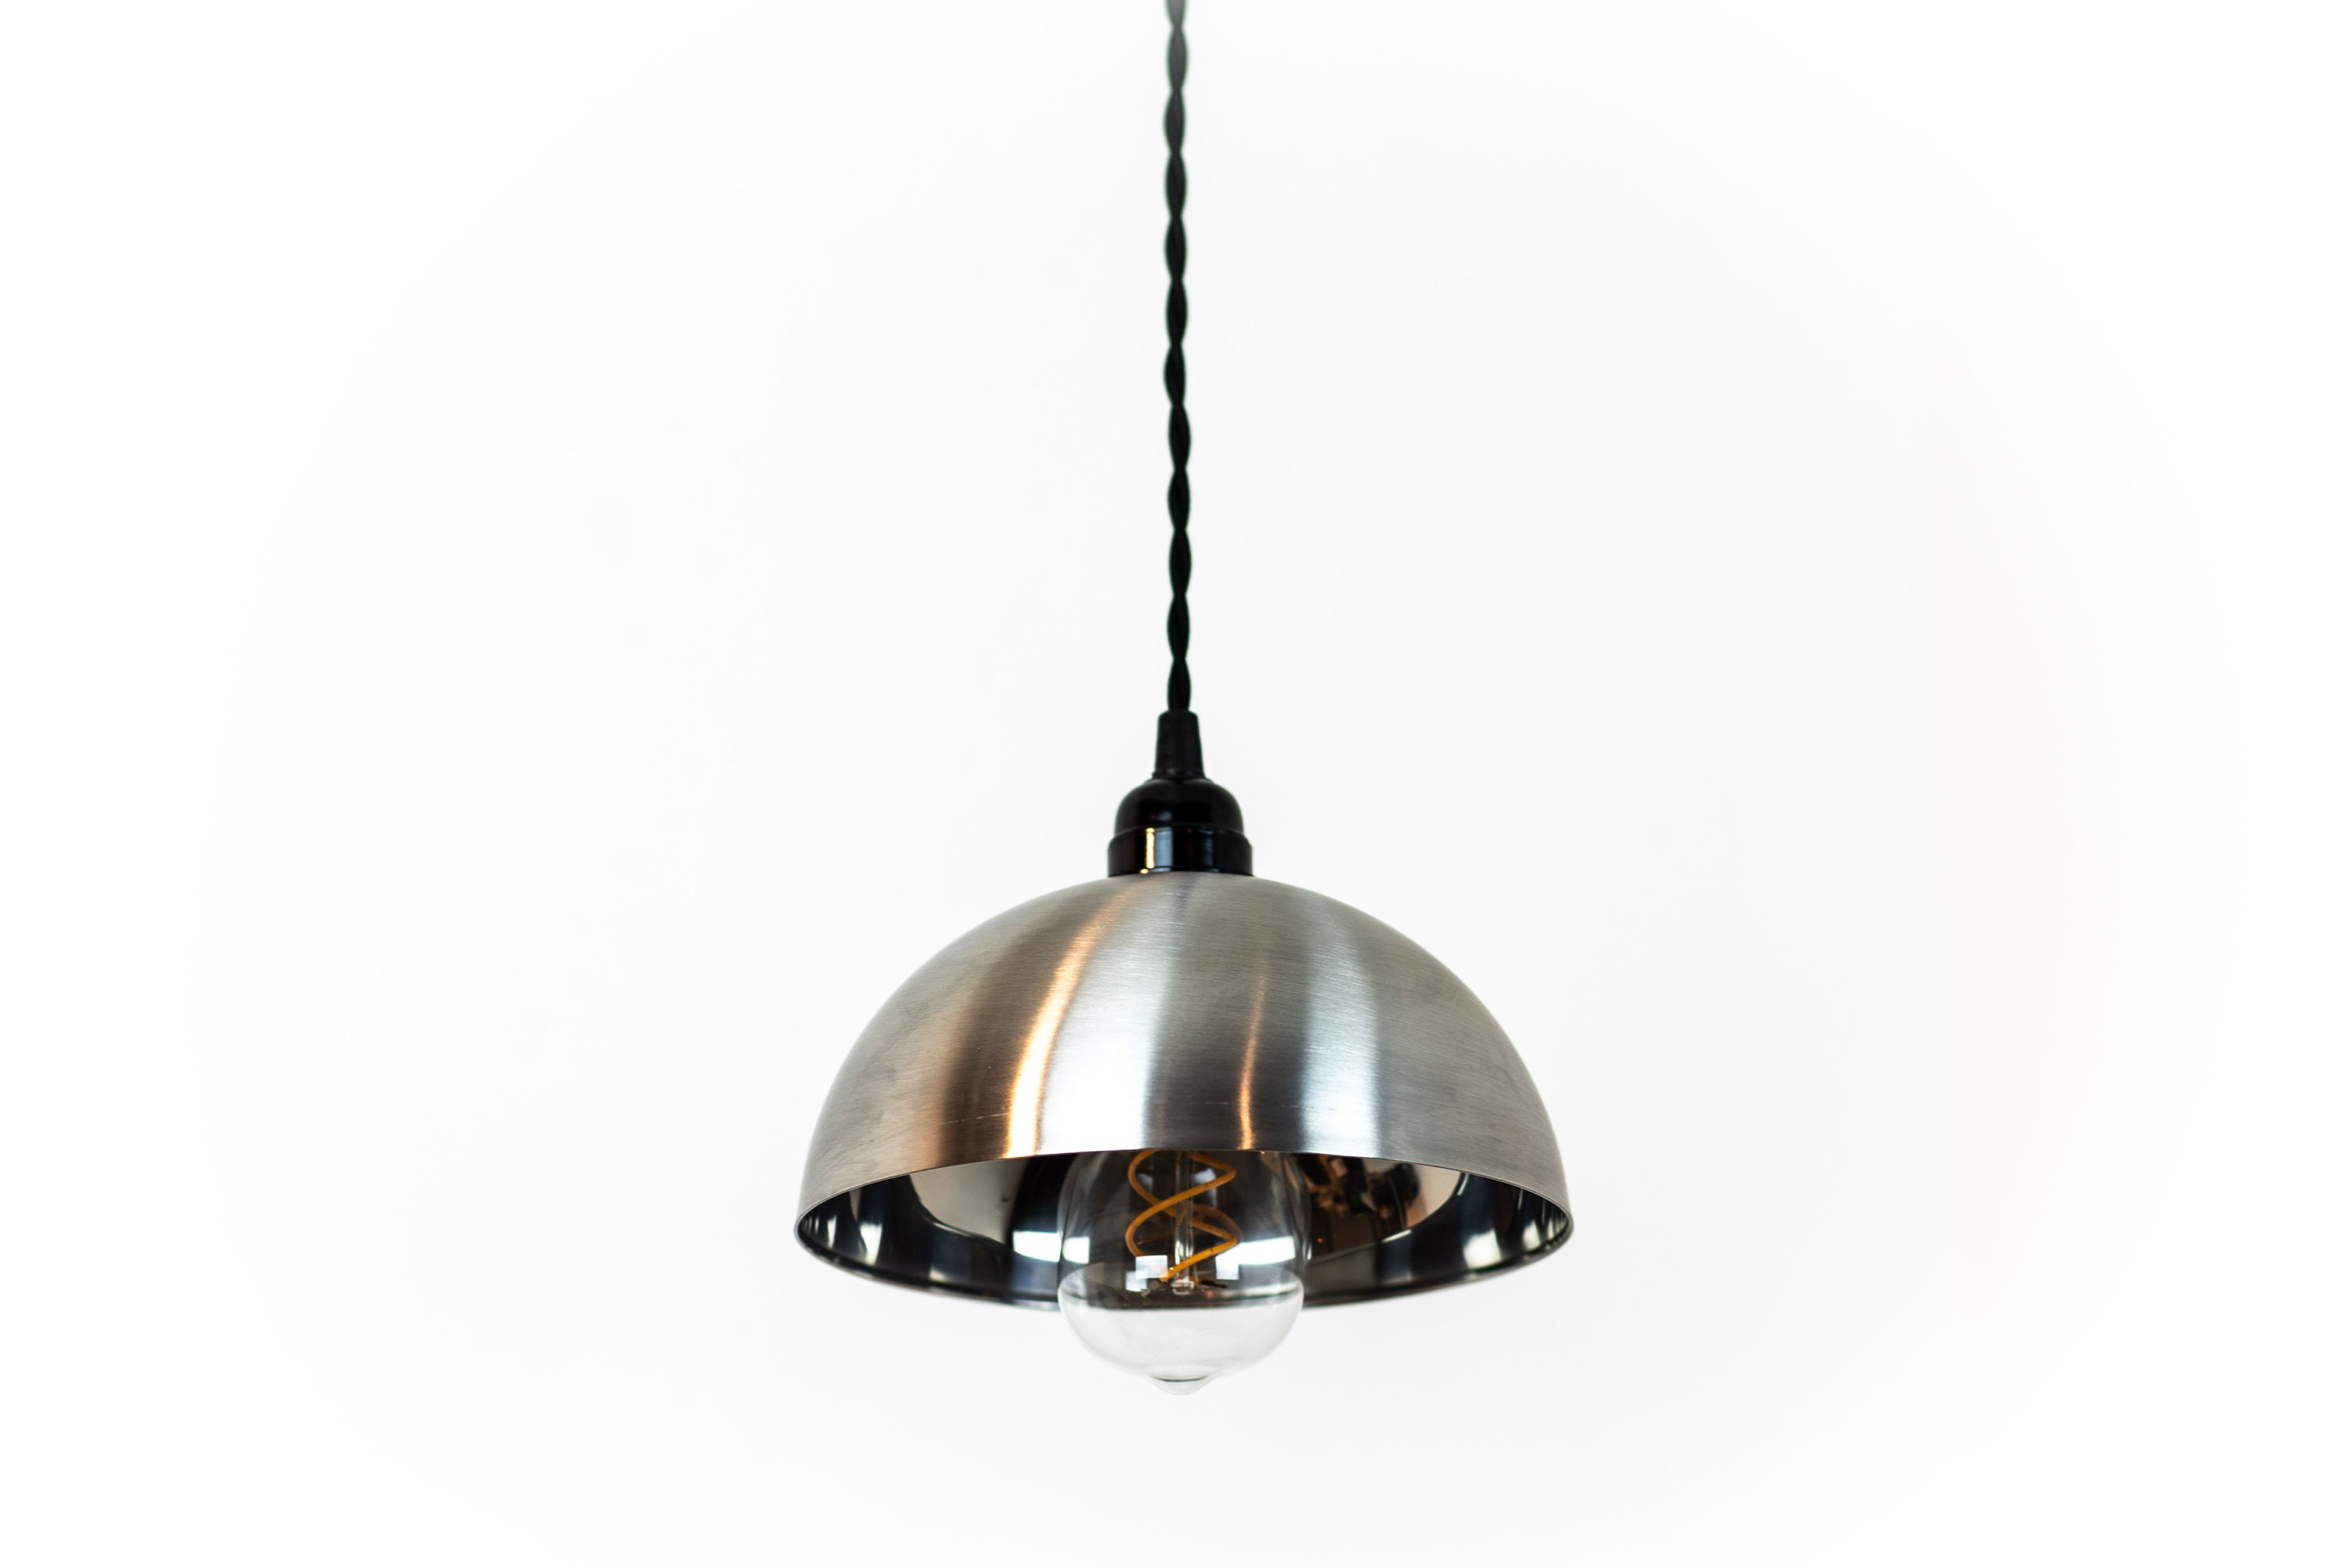 Stainless Steel Pendant Light - Hanging Light Fixture - Plug In ...